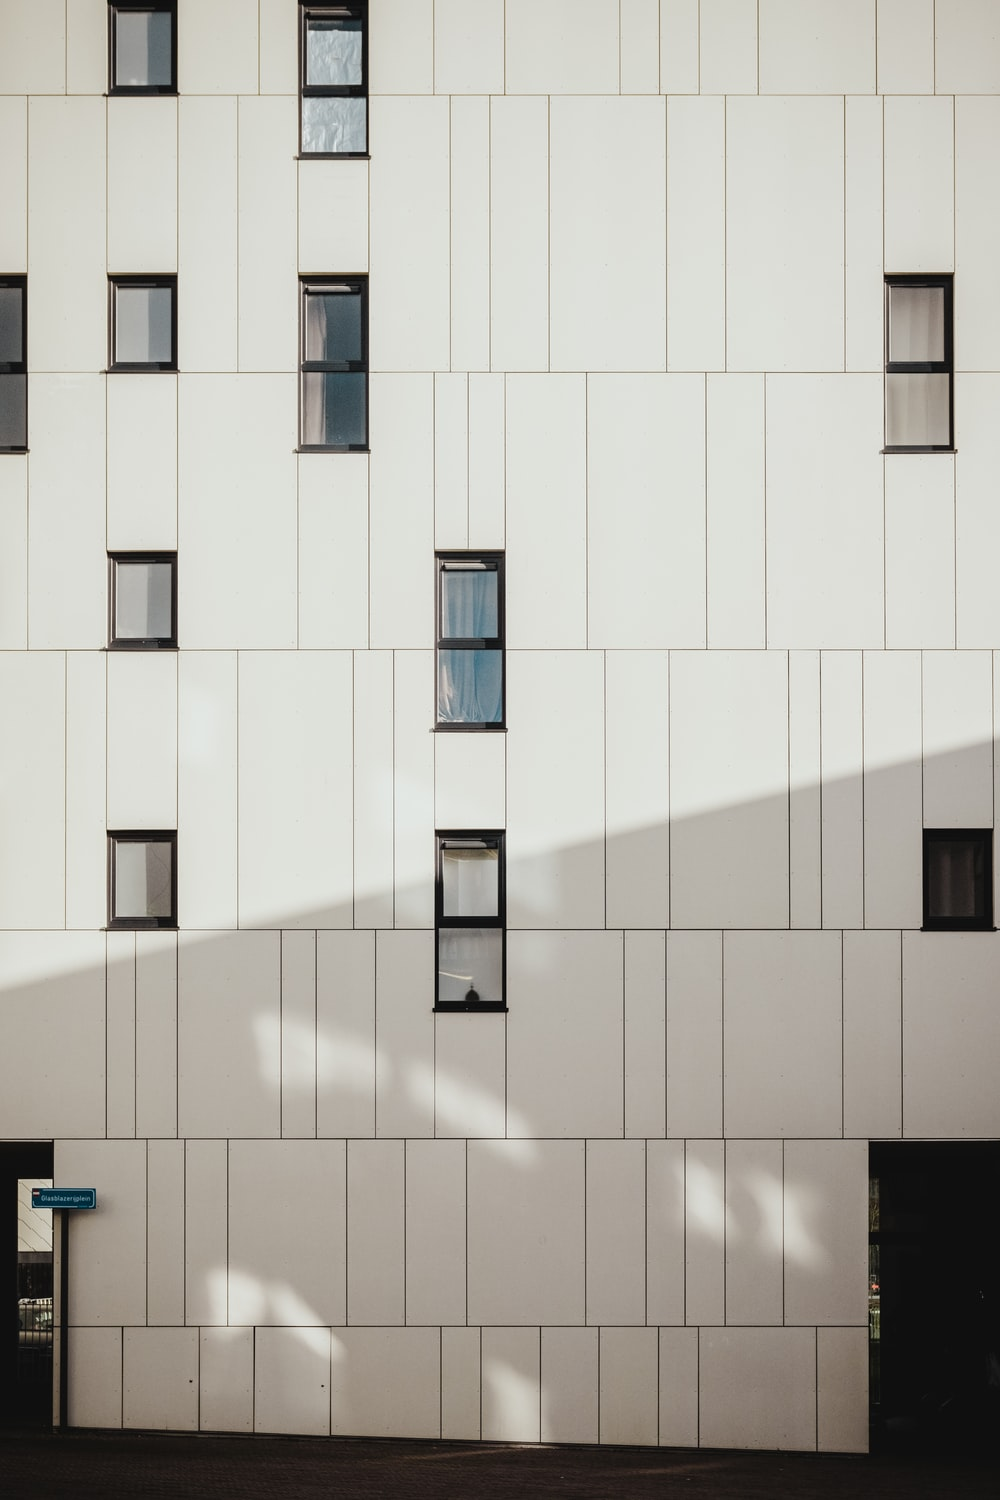 photo of white concrete building during daytime